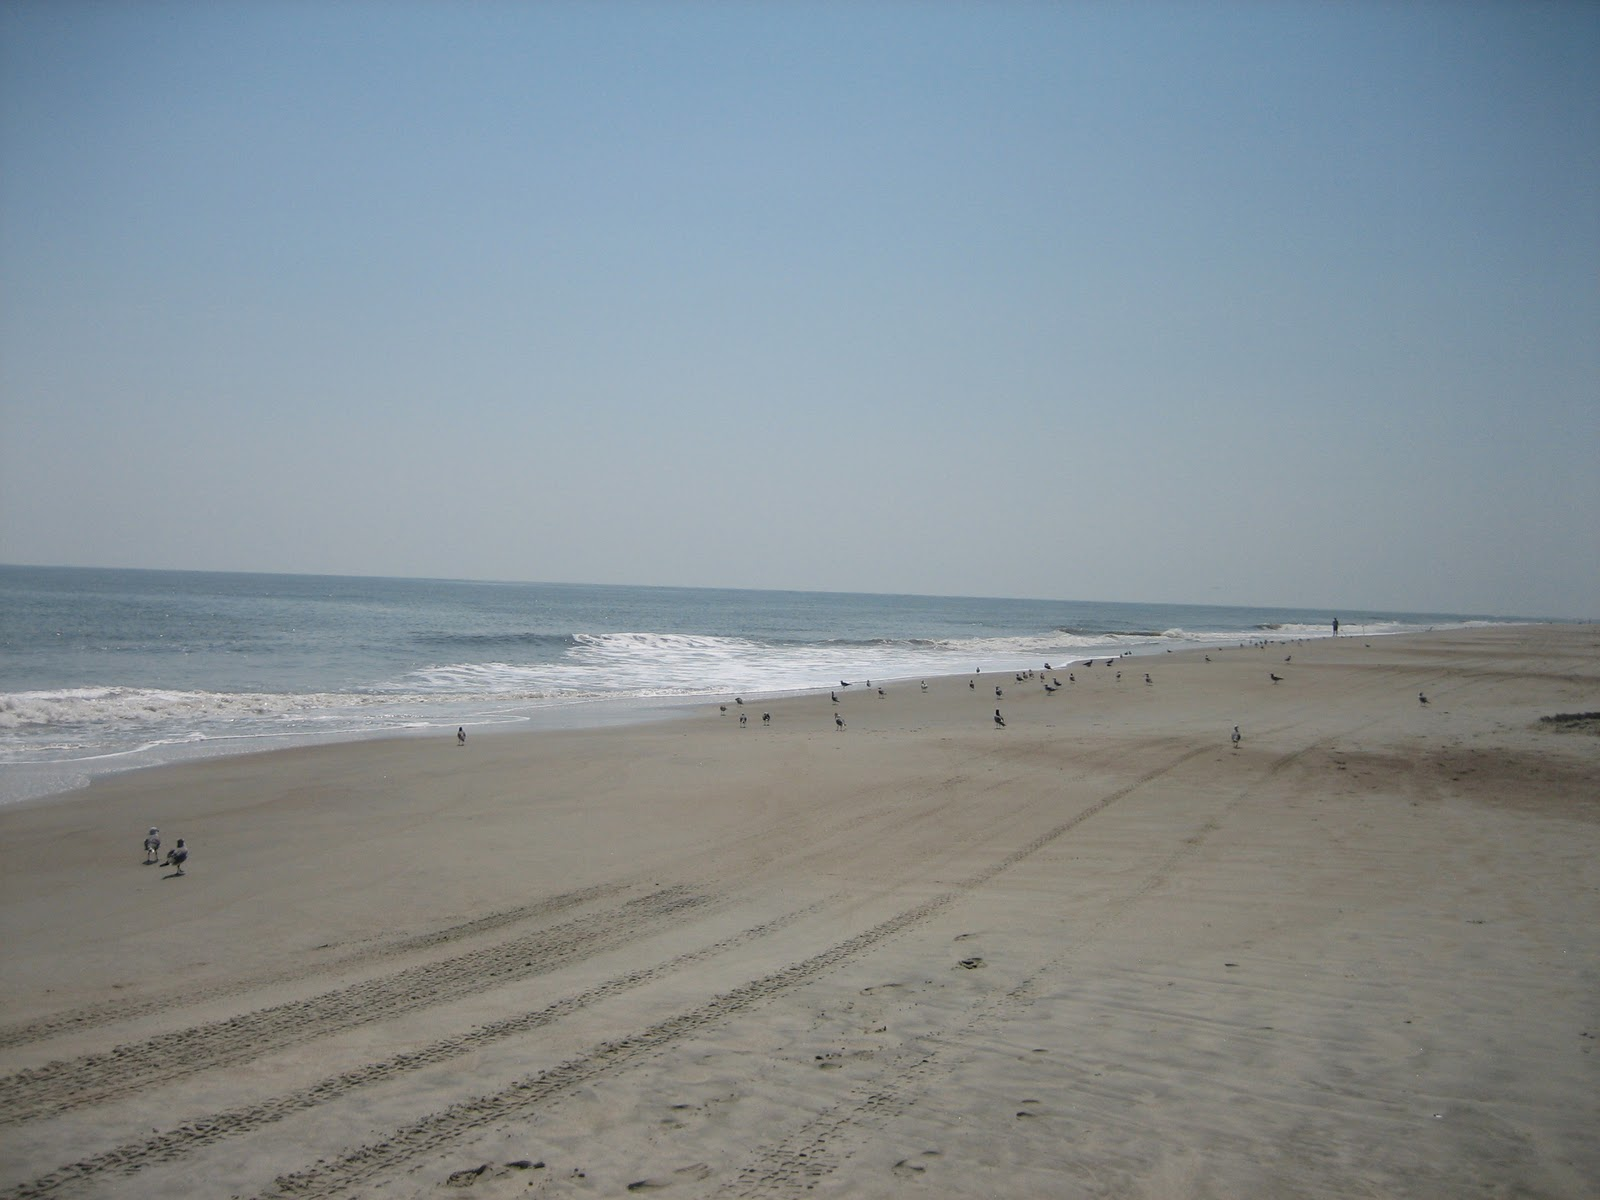 tybee island Browse 1043 resorts & hotels with spas in tybee island & save money with our expedia price guarantee read user reviews of over 321,000 hotels worldwide no expedia cancellation fee.